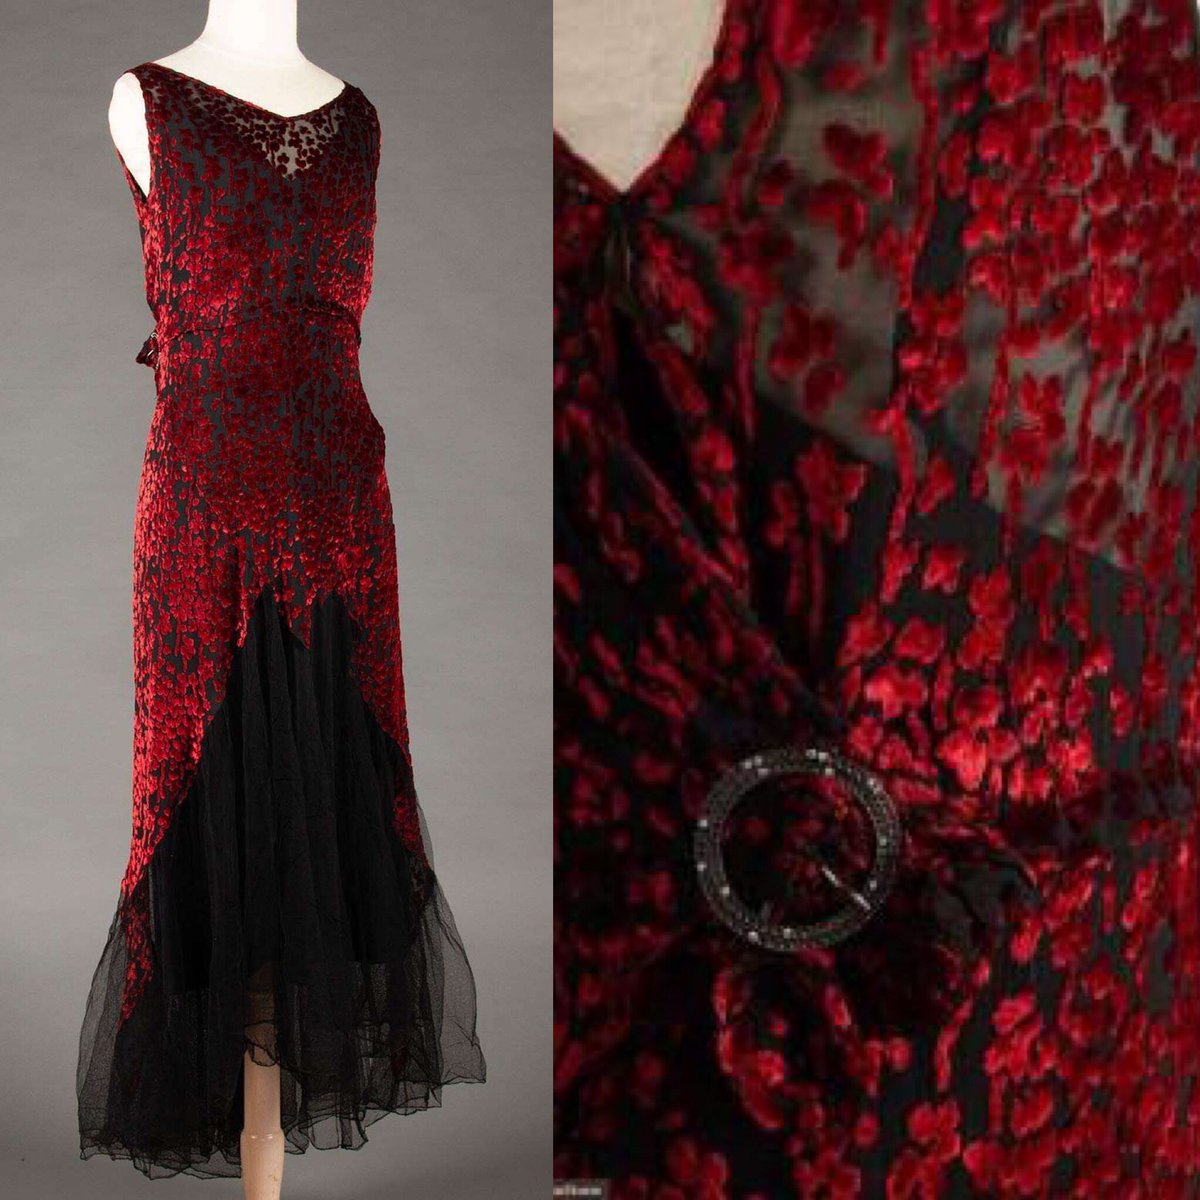 Photos: red gown circa 1930s